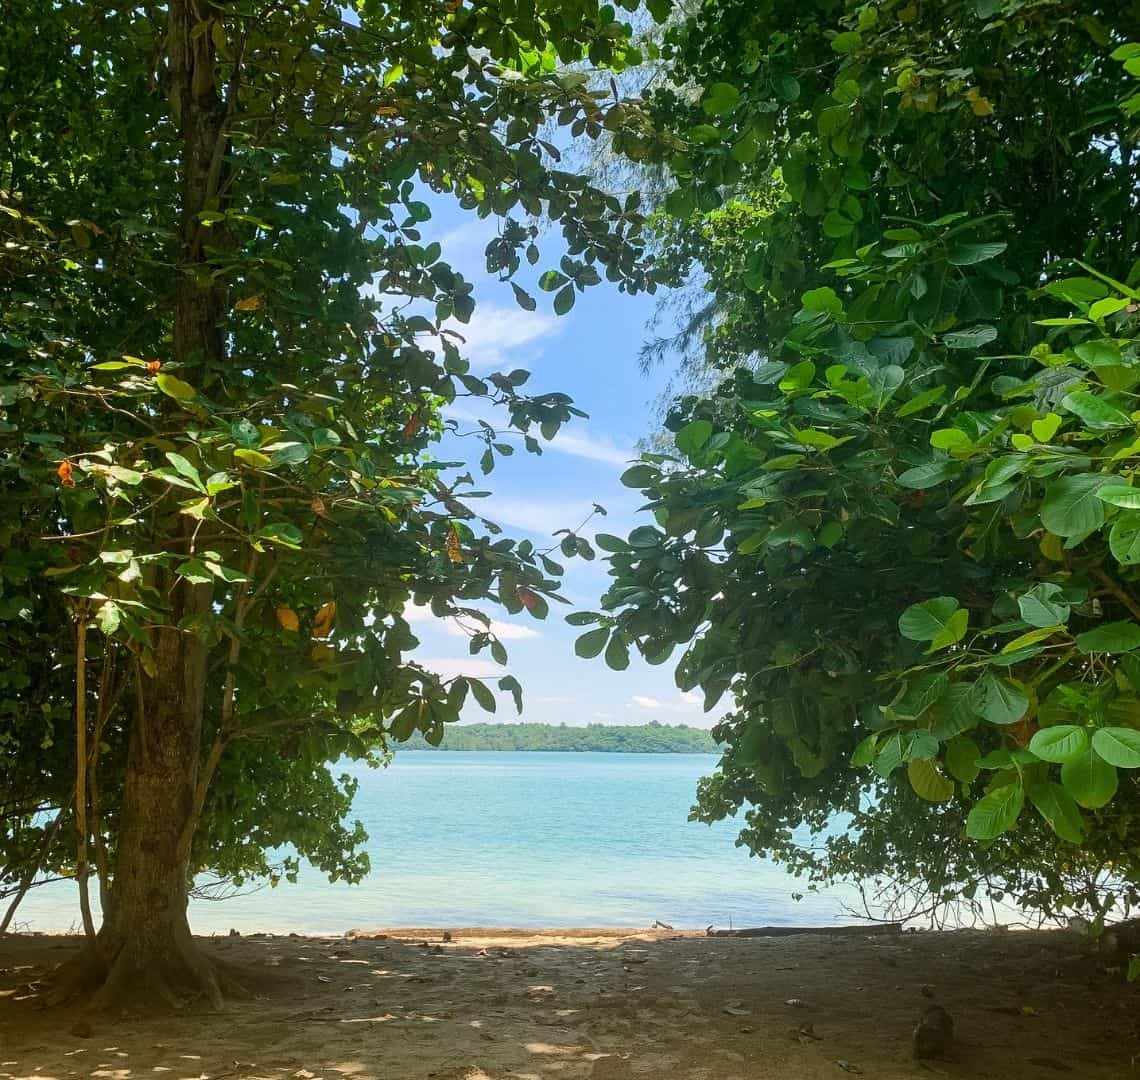 There are two large green trees framing the image - one on each side. At the bottom there is sand in the shade of the trees. Beyond the beach is turquoise water and beyond that the green trees of the next island (Pulau Ubin)